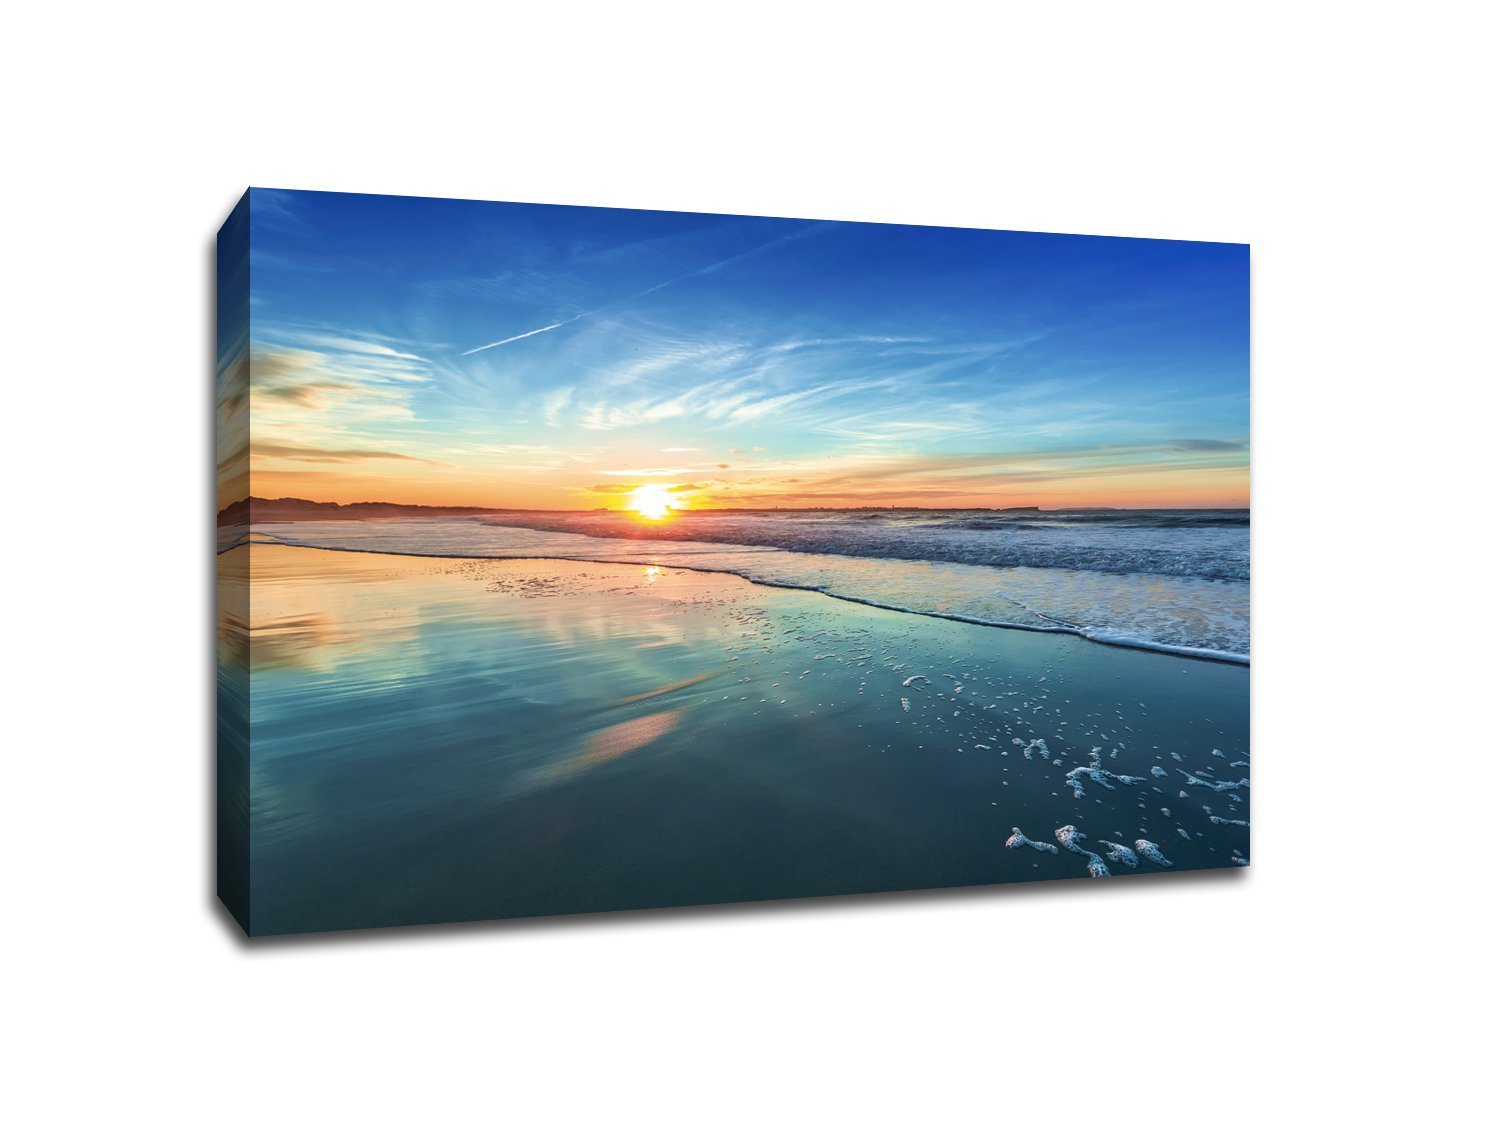 Sunset Beach - Water Landscapes - 48x36 Gallery Wrapped Canvas Wall Art